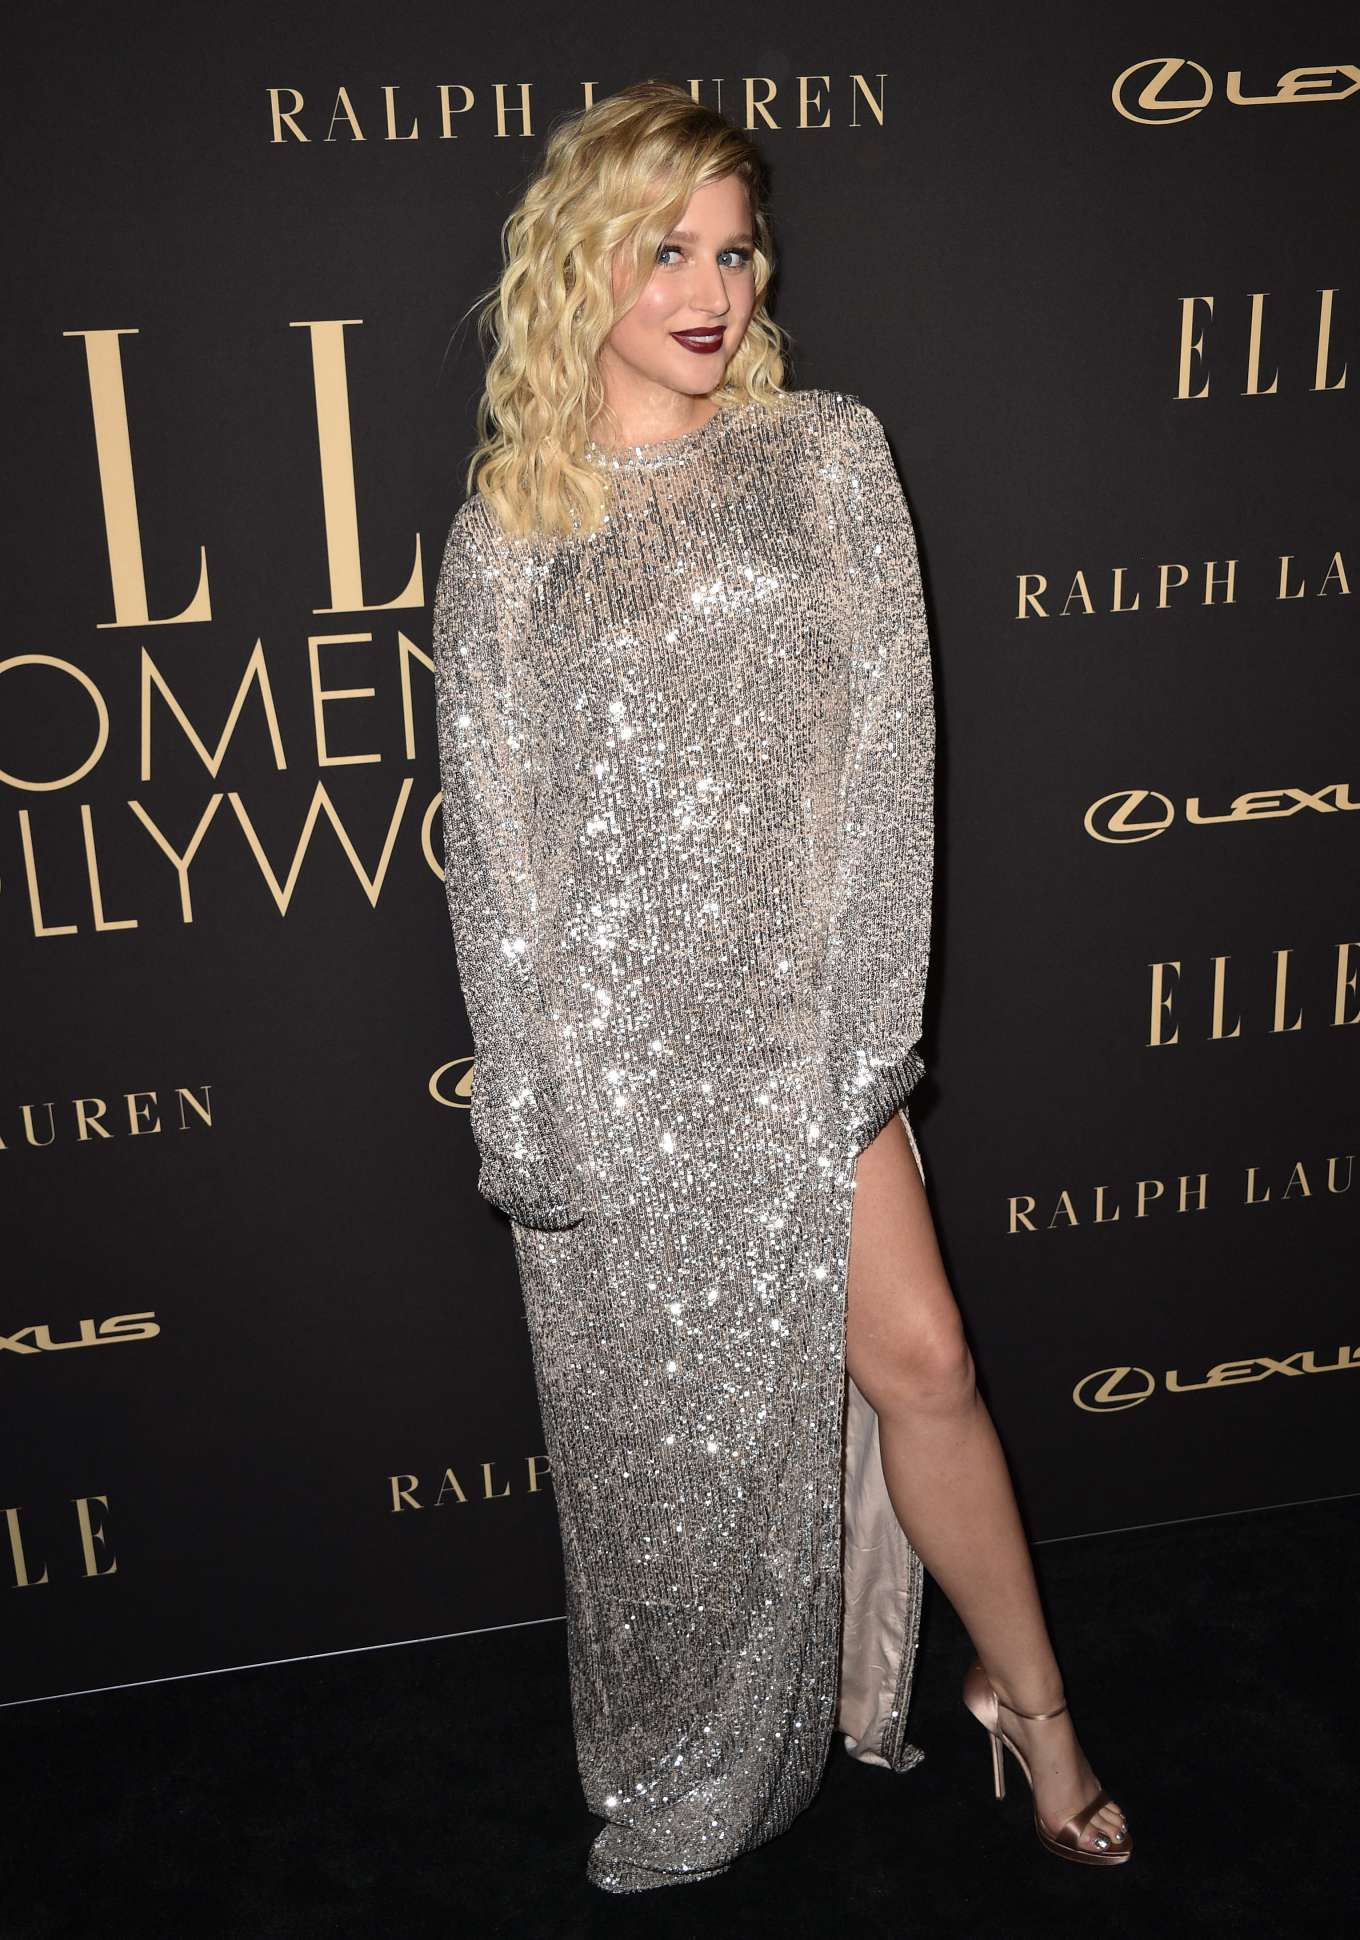 Julia Schlaepfer - ELLE's 26th Annual Women in Hollywood Celebration in LA